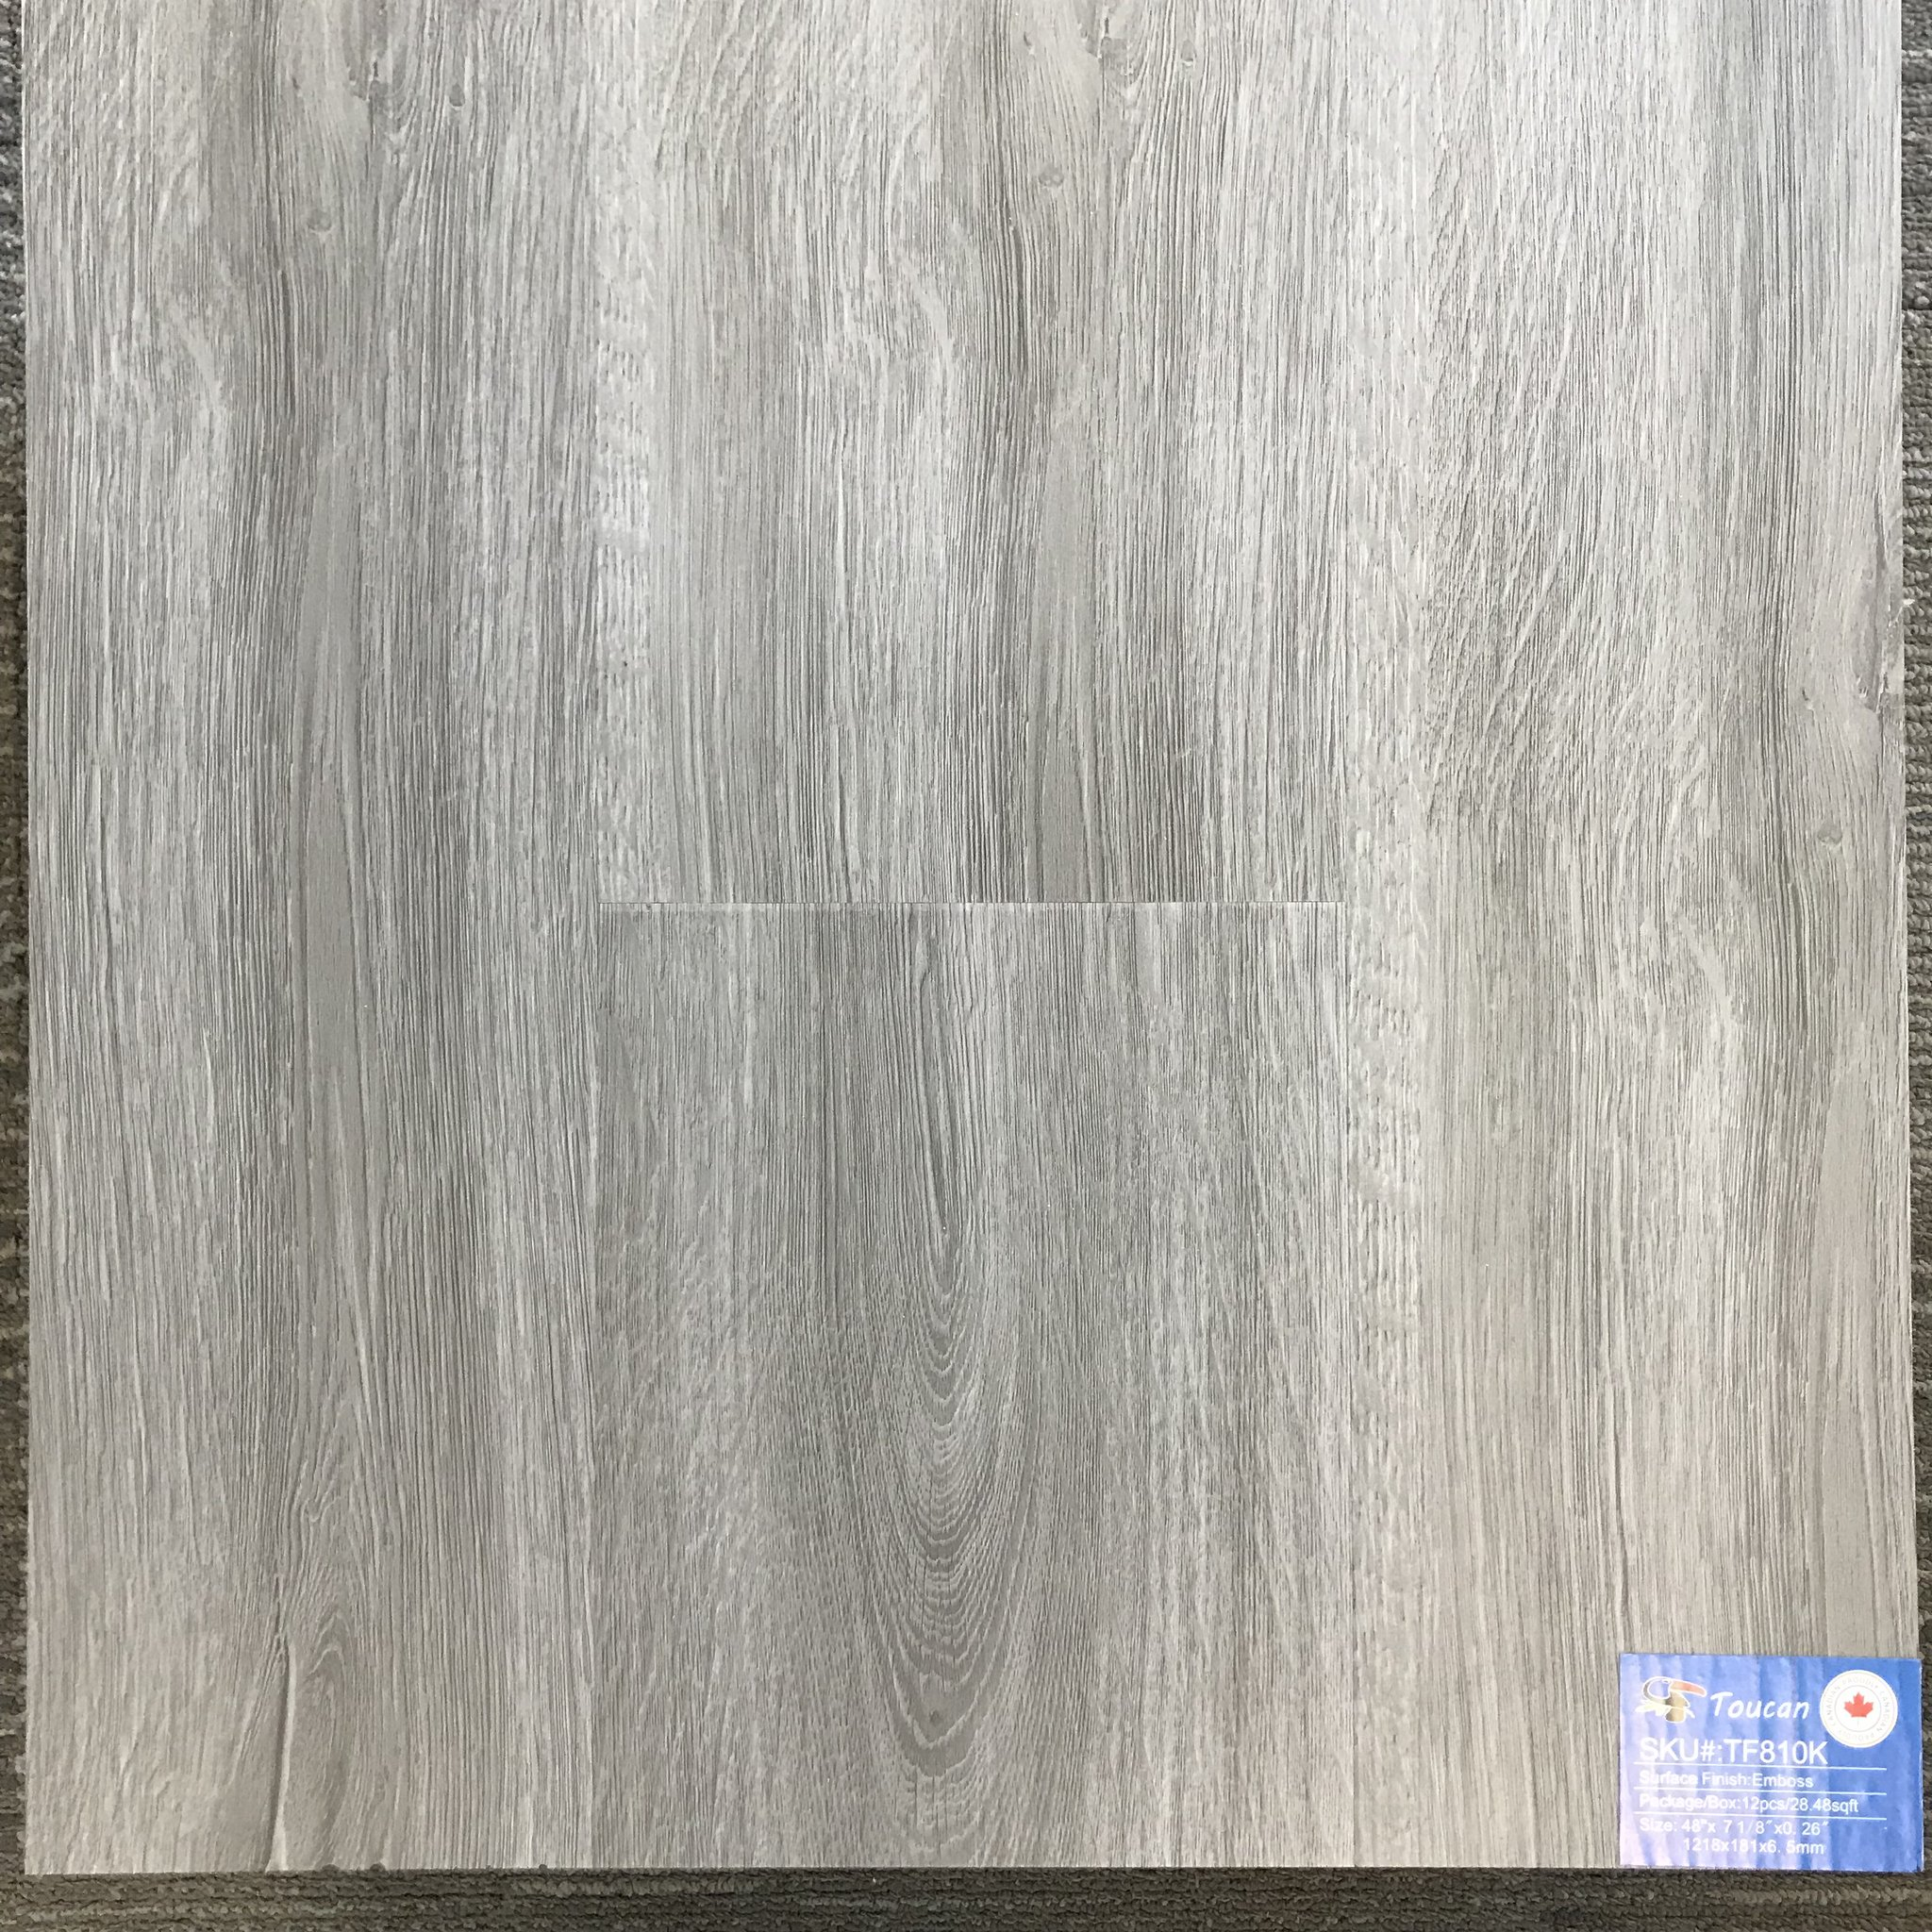 Toucan Flooring's WPC Collection